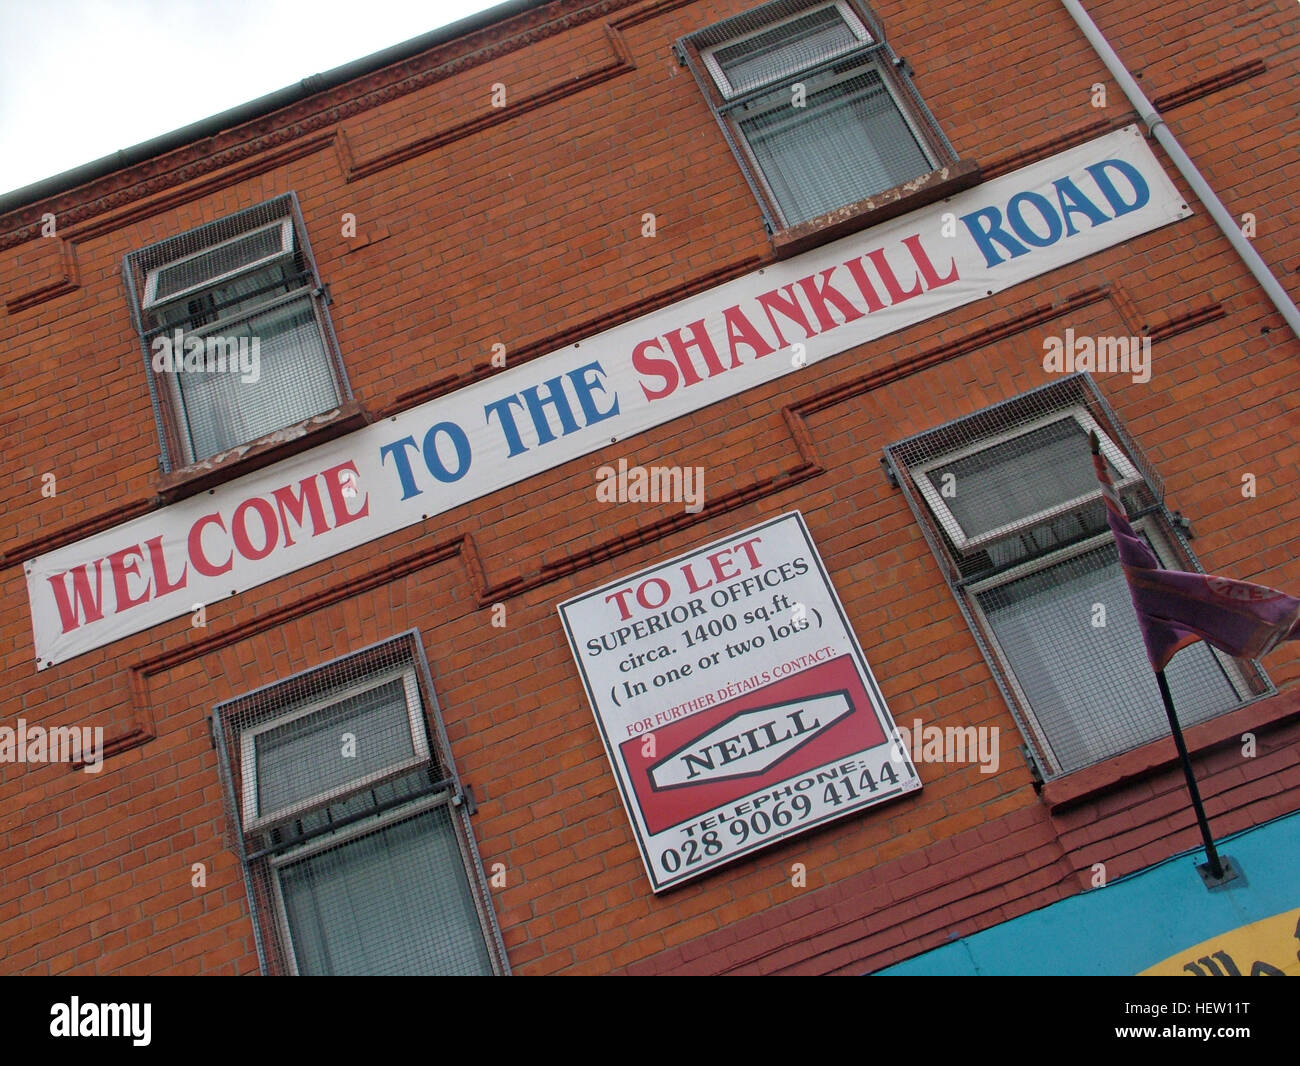 Shankill Road Mural -Welcome To The Shankill Road, West Belfast, Northern Ireland, UK - Stock Image